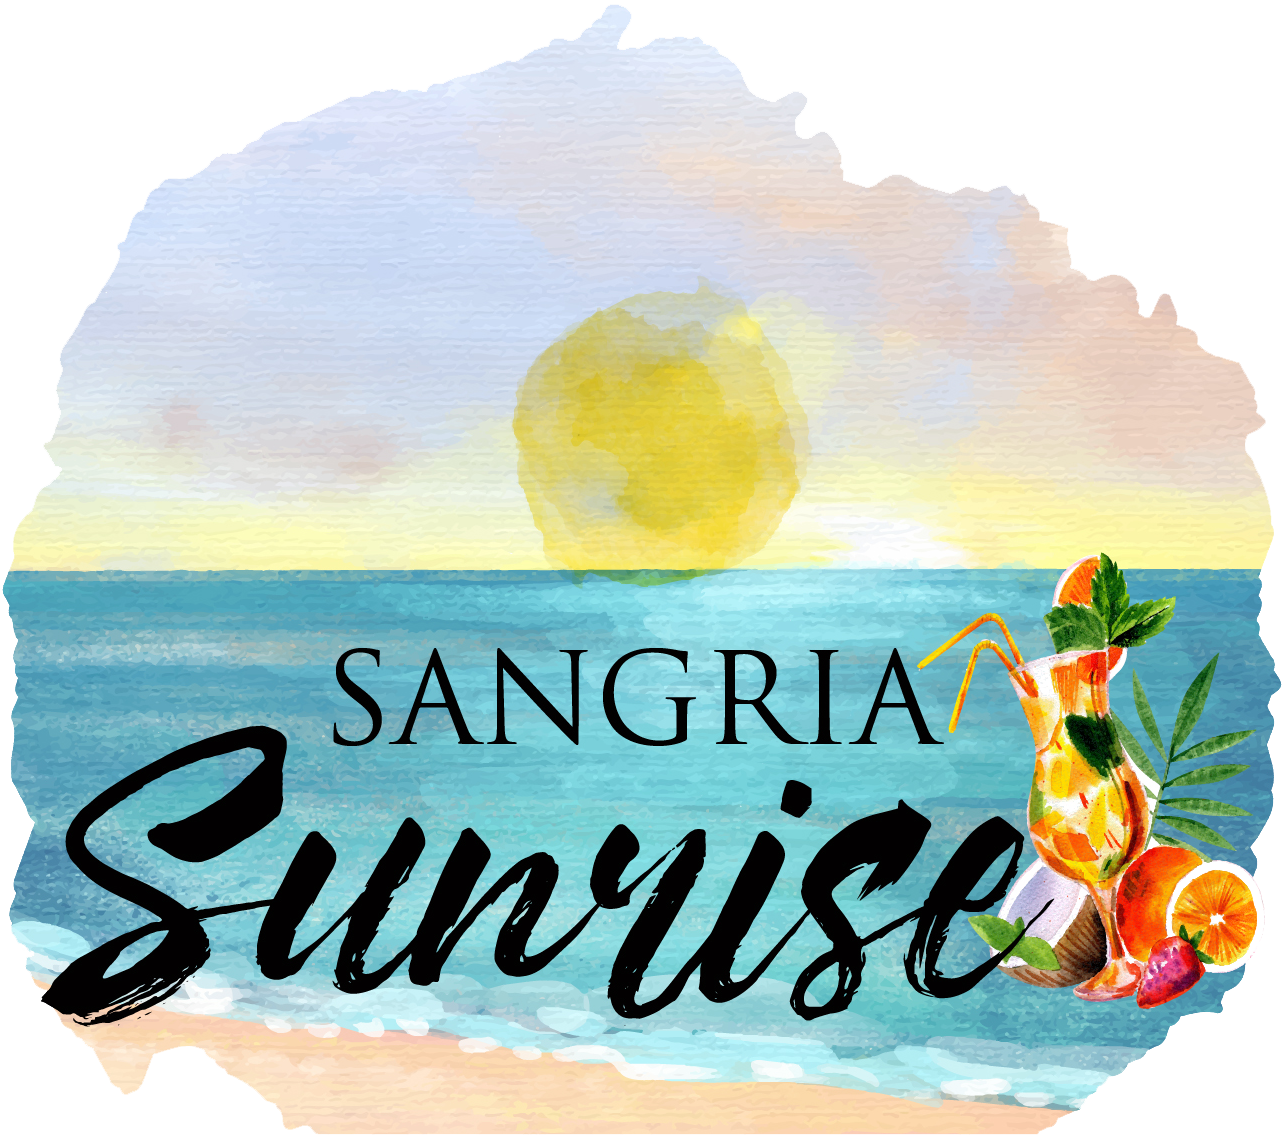 Sangria Sunrise Vacations